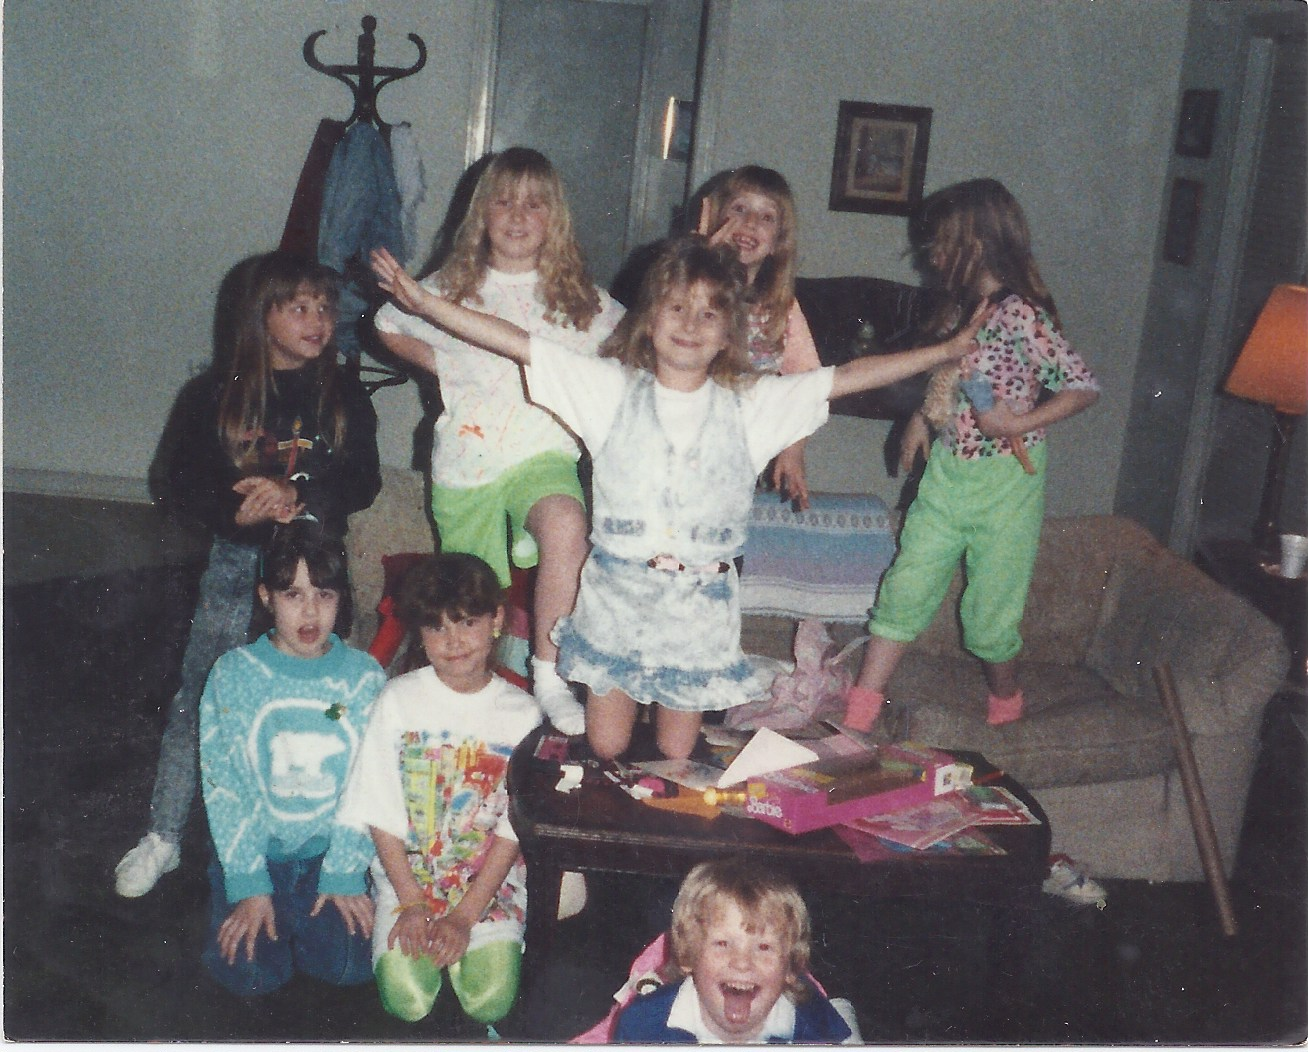 An early birthday party with my friends. And a cameo by little brother.